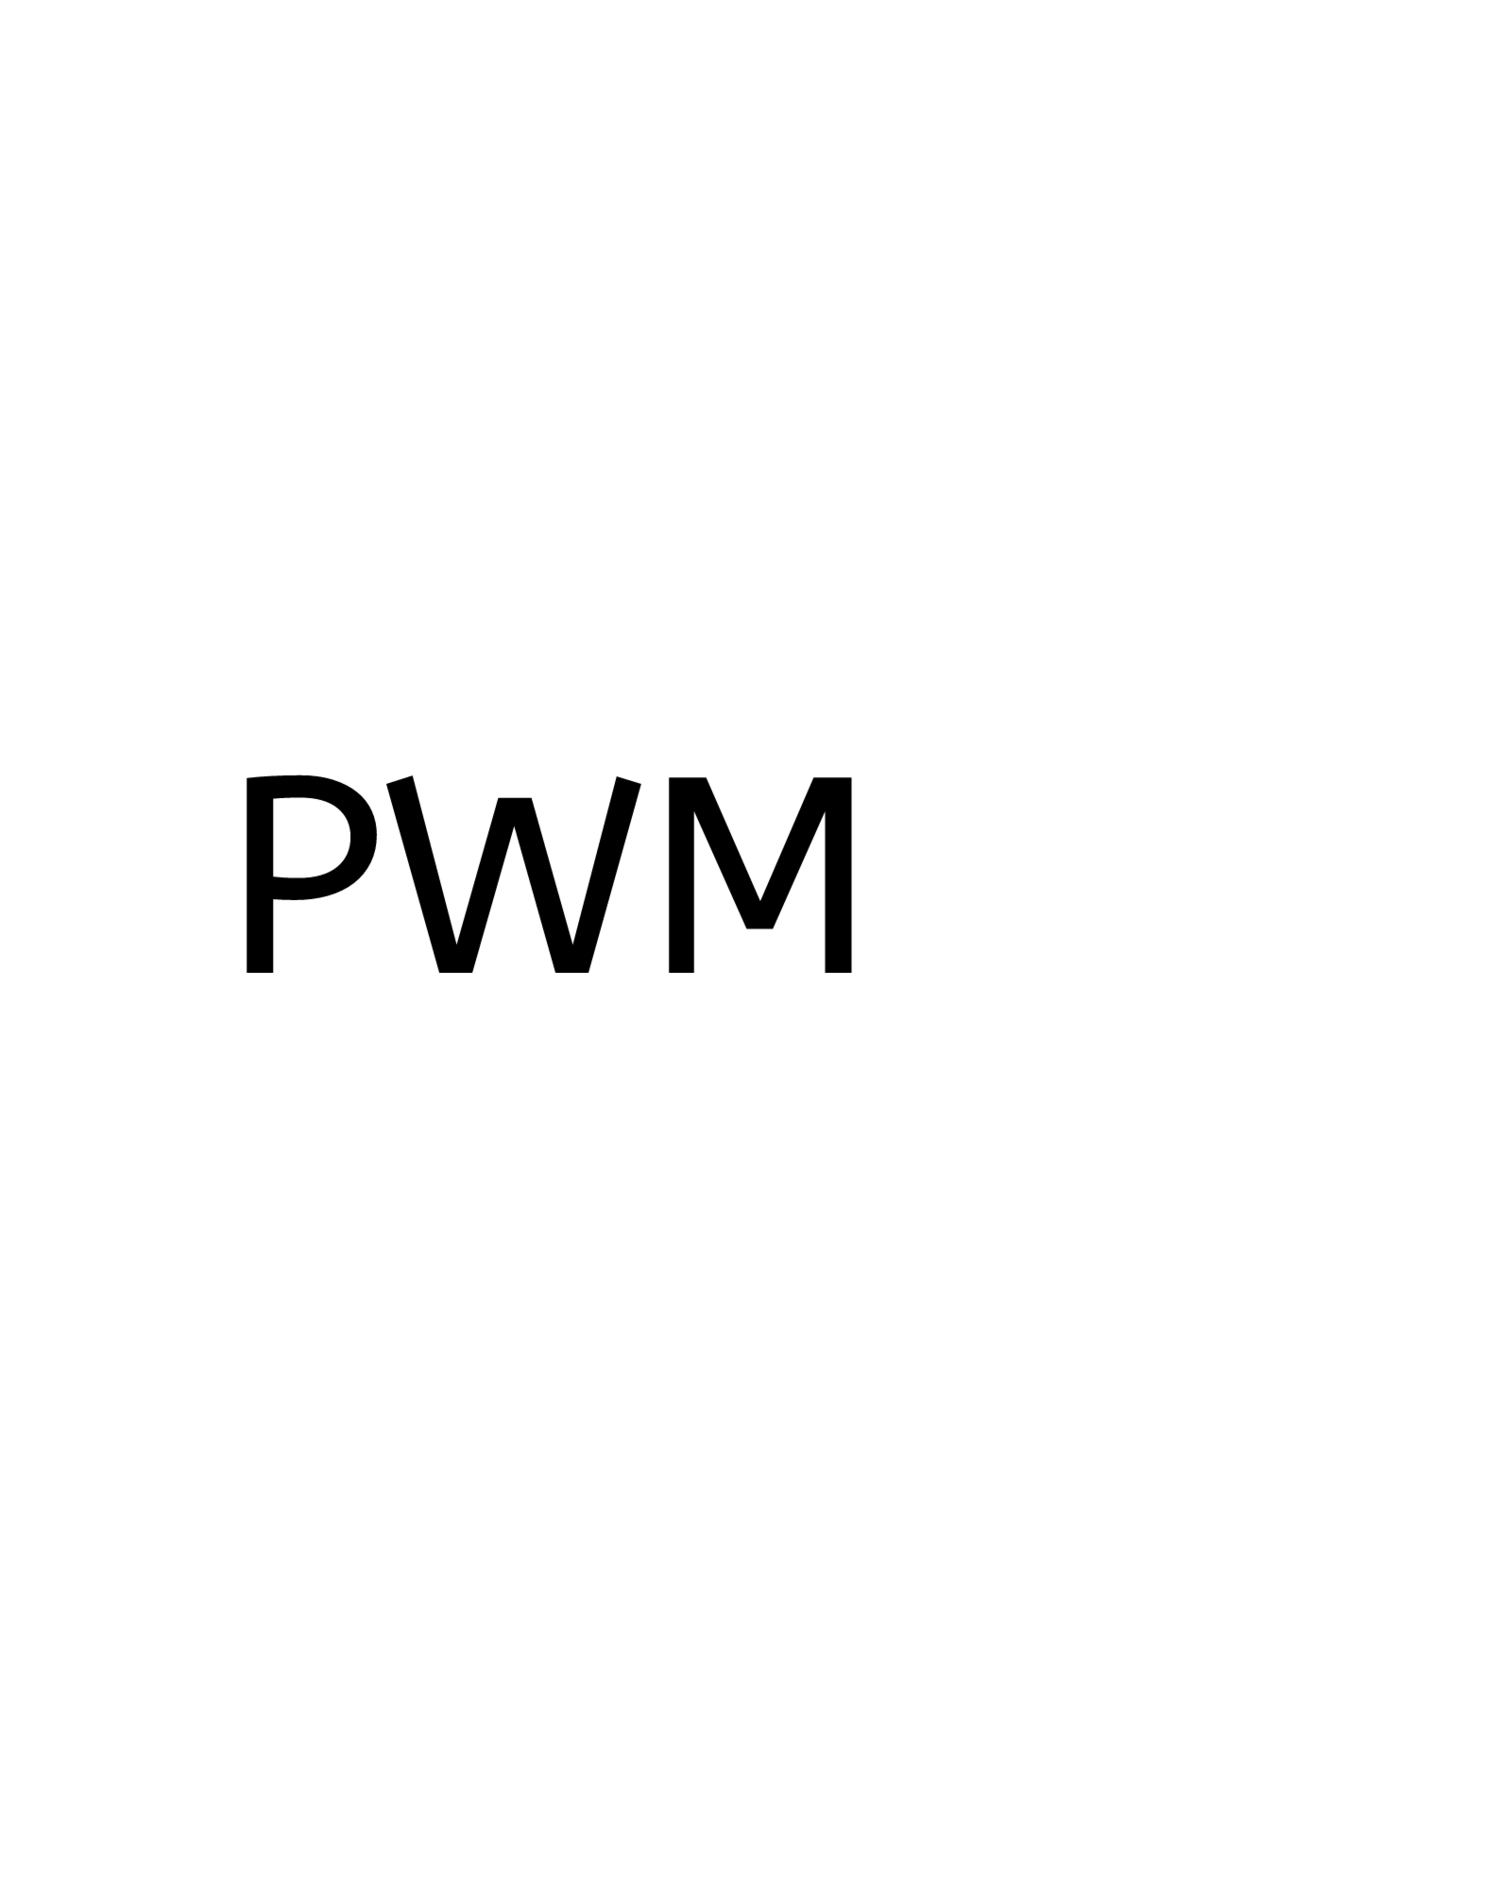 Paul Whitehead Music | PWM Music